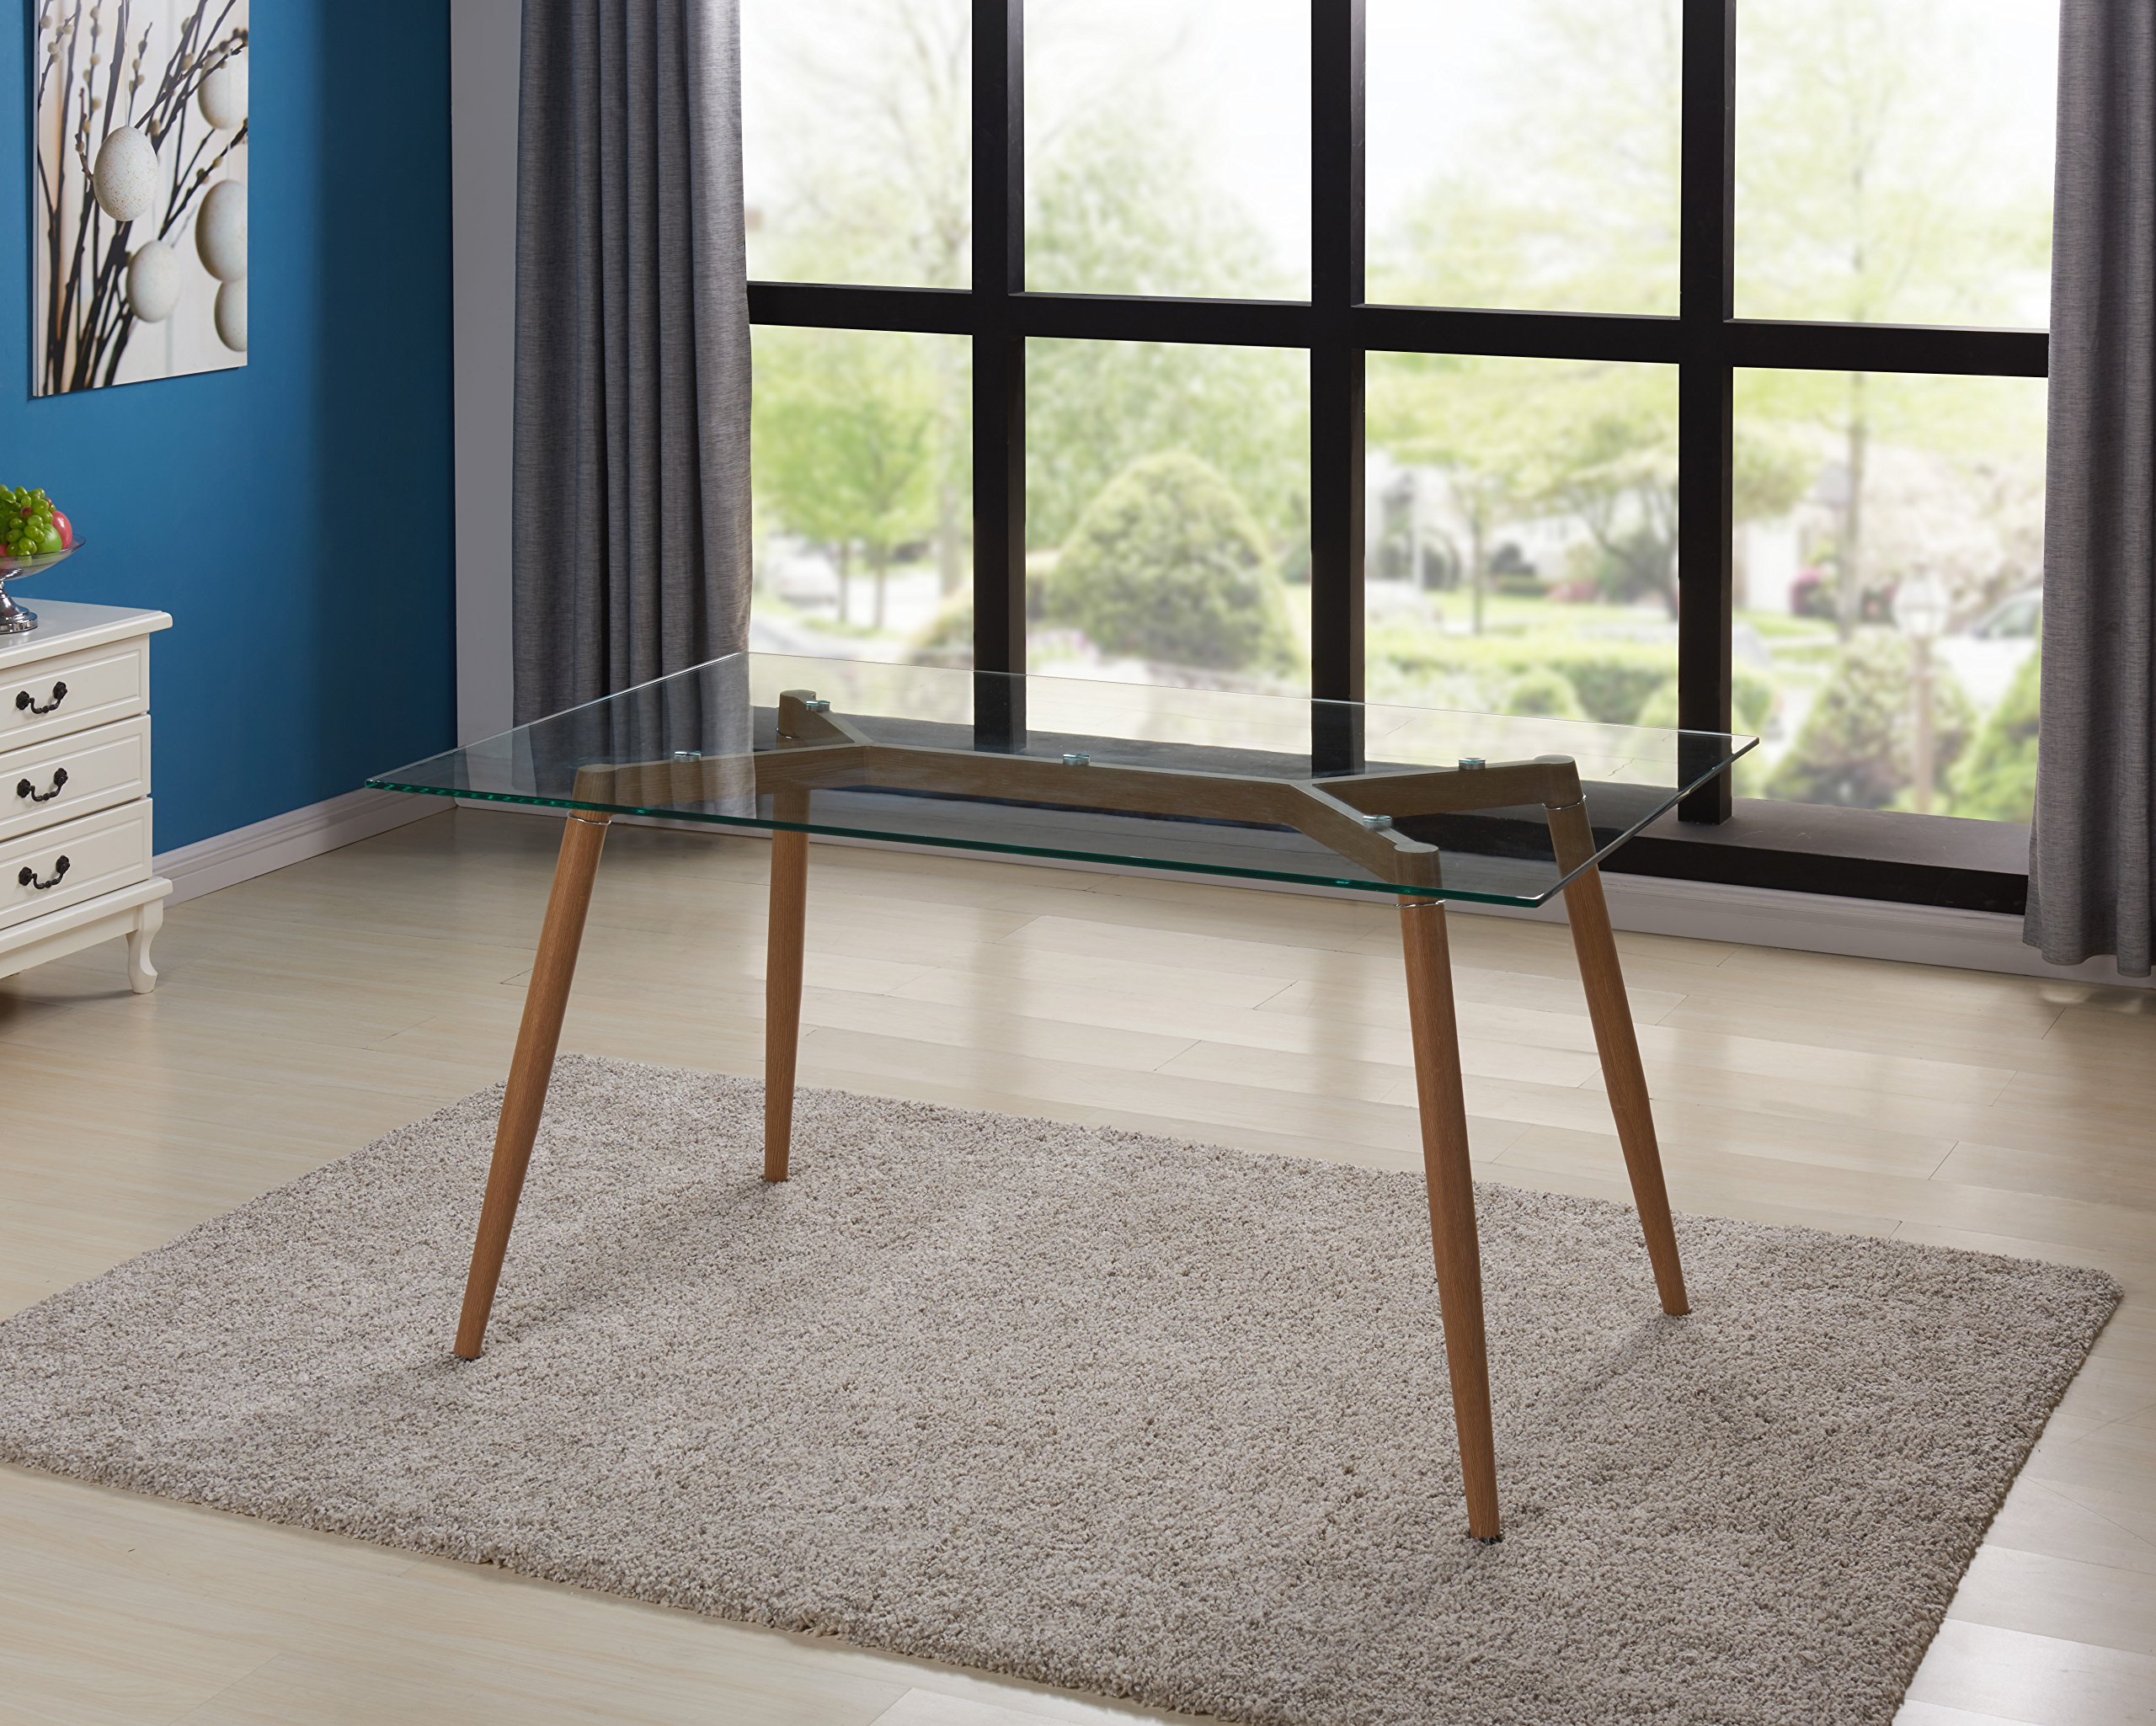 IDS Online MLM-18608-T Mid Century Glass Dining Table with Foot Pad, Office Desk, Size 51.18'' X 31.50'' X 29.53'', Wooden Skin by IDS Online